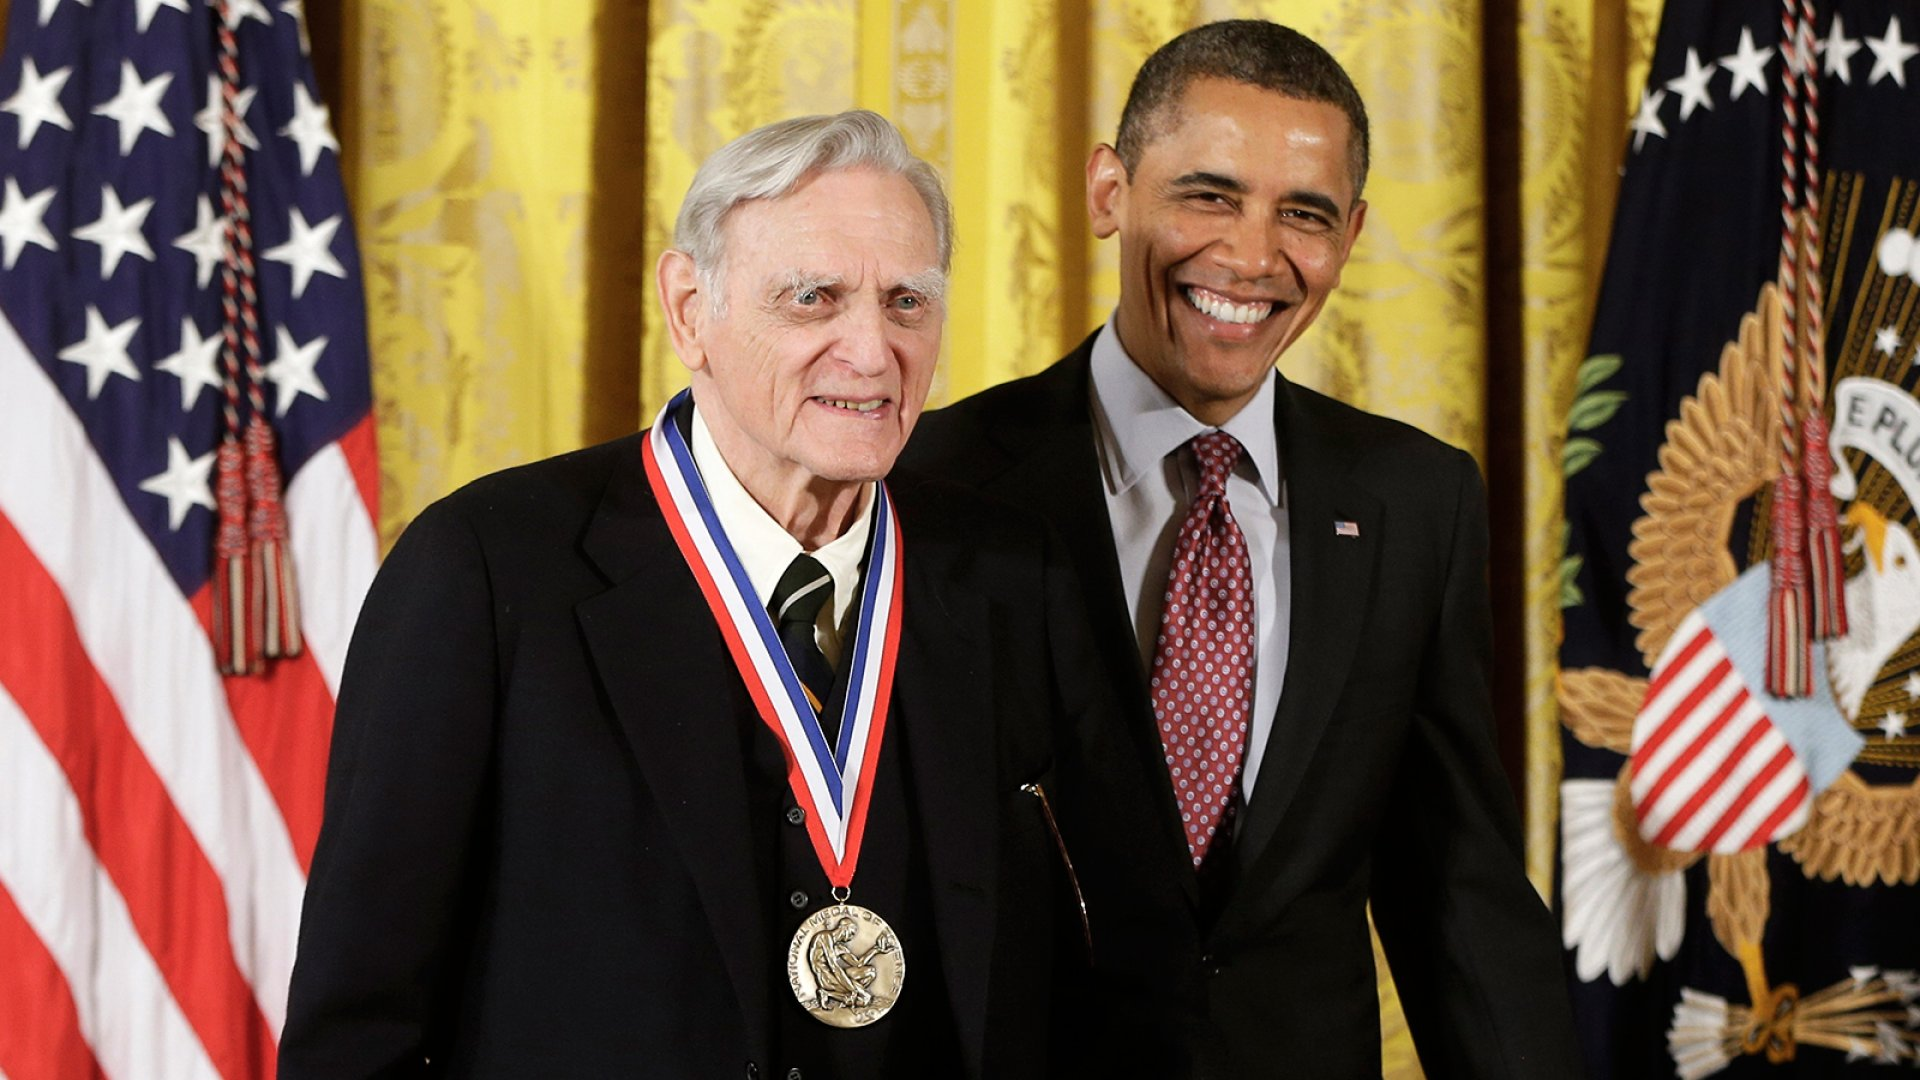 President Obama awards John Goodenough the National Medal of Science, the highest honor bestowed by the U.S. on scientists, engineers, and inventors, during a ceremony at the White House on February 1, 2013.